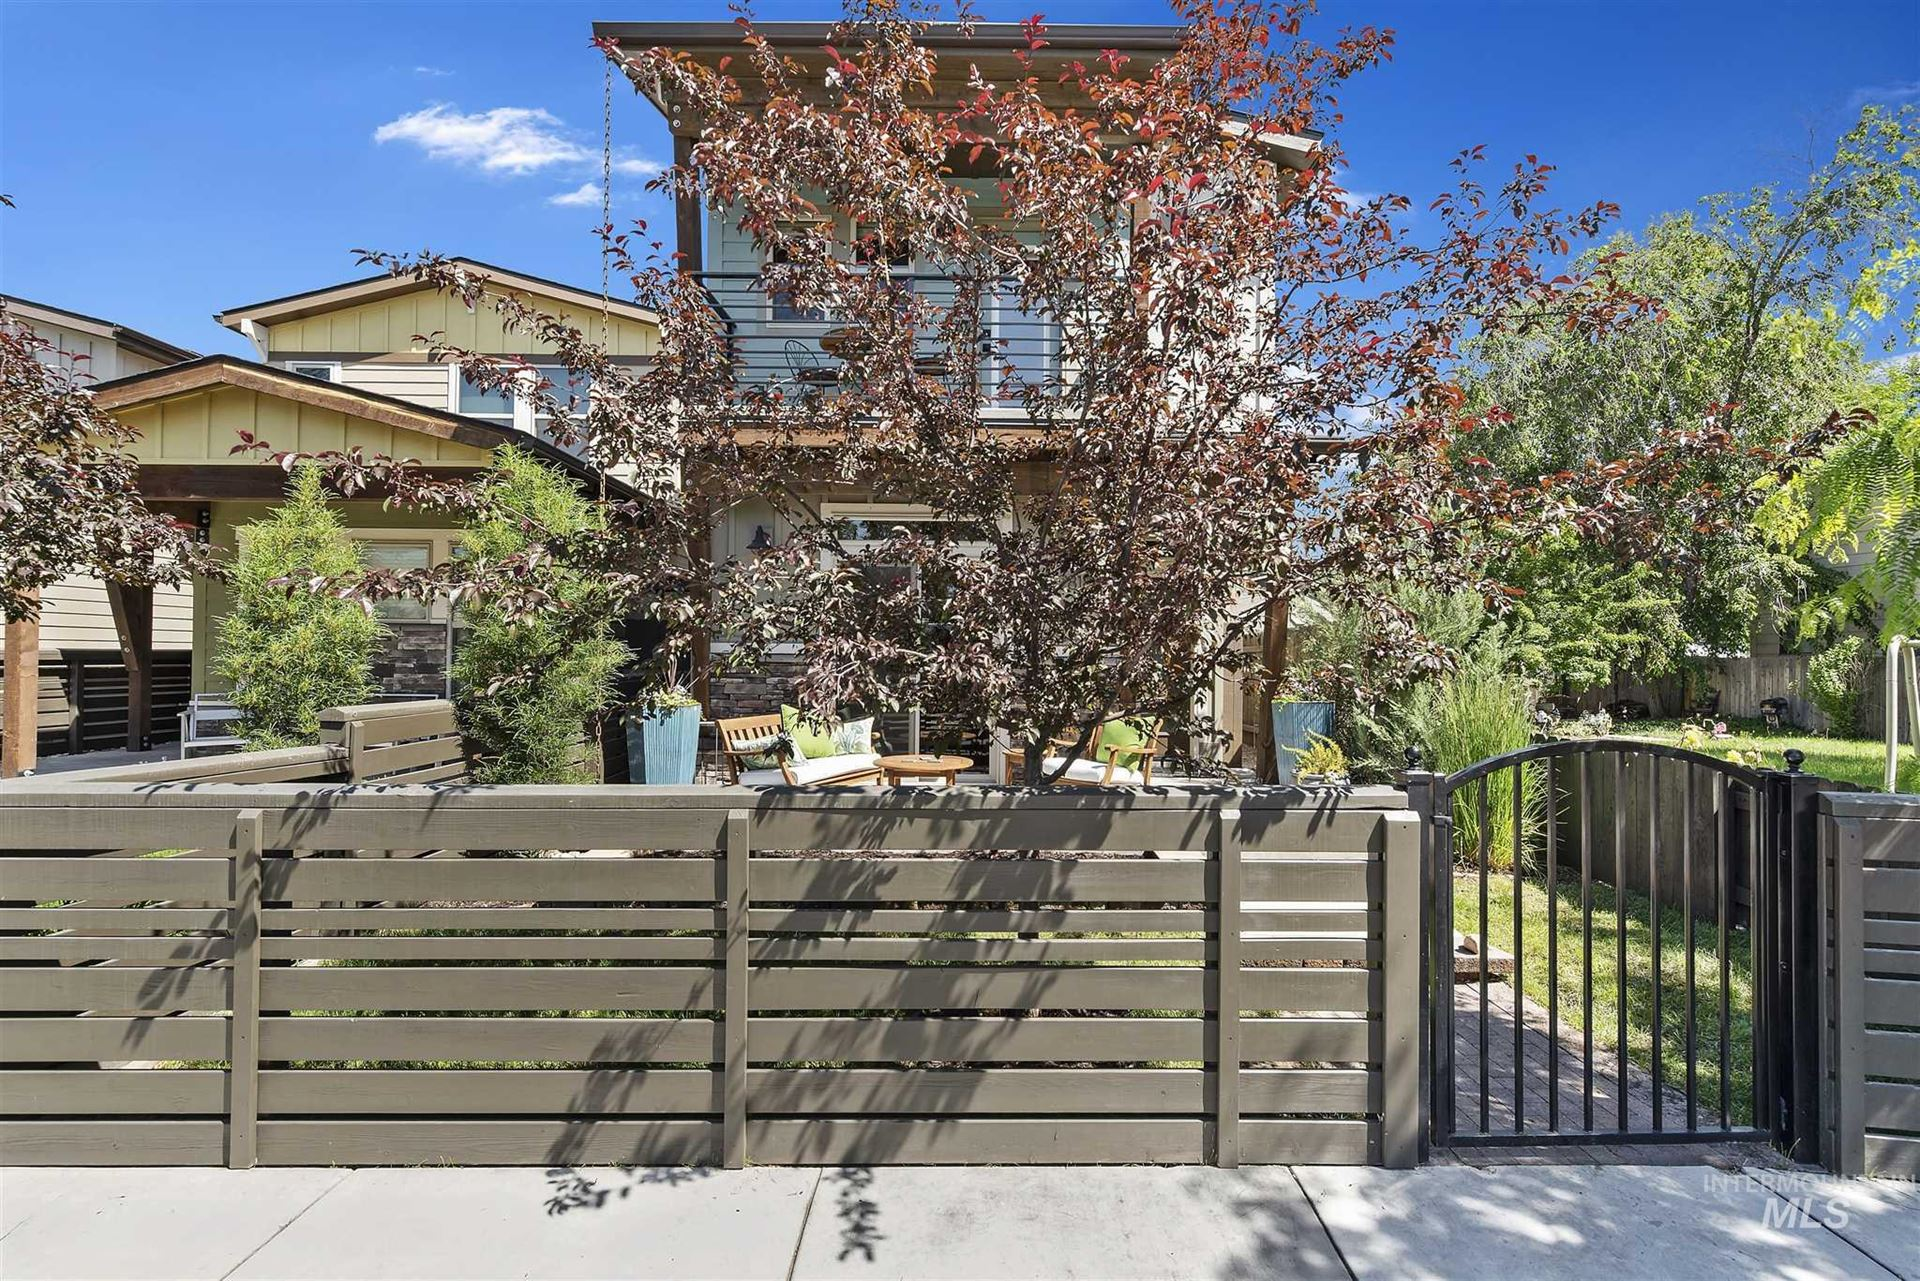 Photo of 2818 W Madison Ave, Boise, ID 83702 (MLS # 98768662)